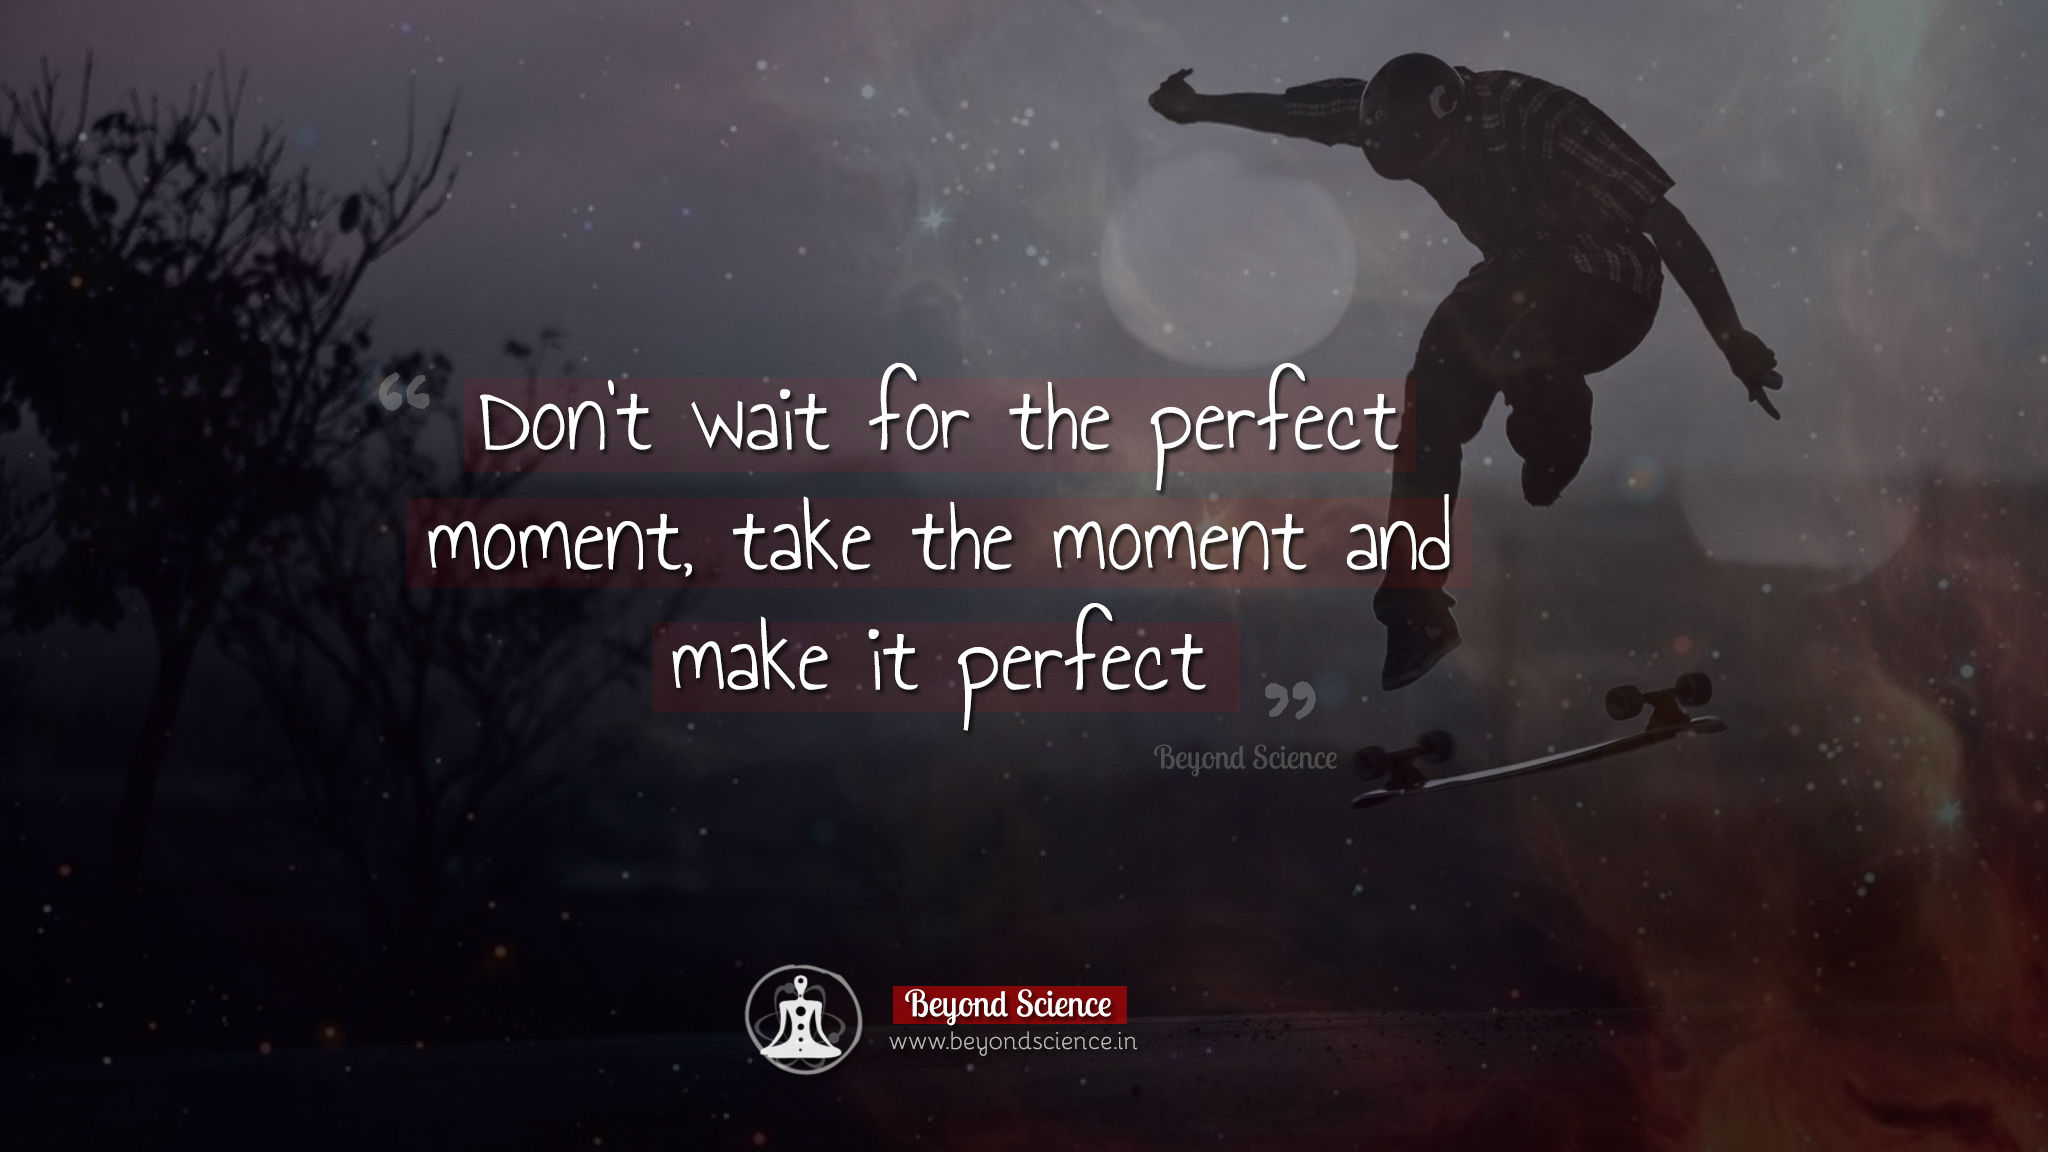 Don't wait for the perfect moment take the moment and make it perfect